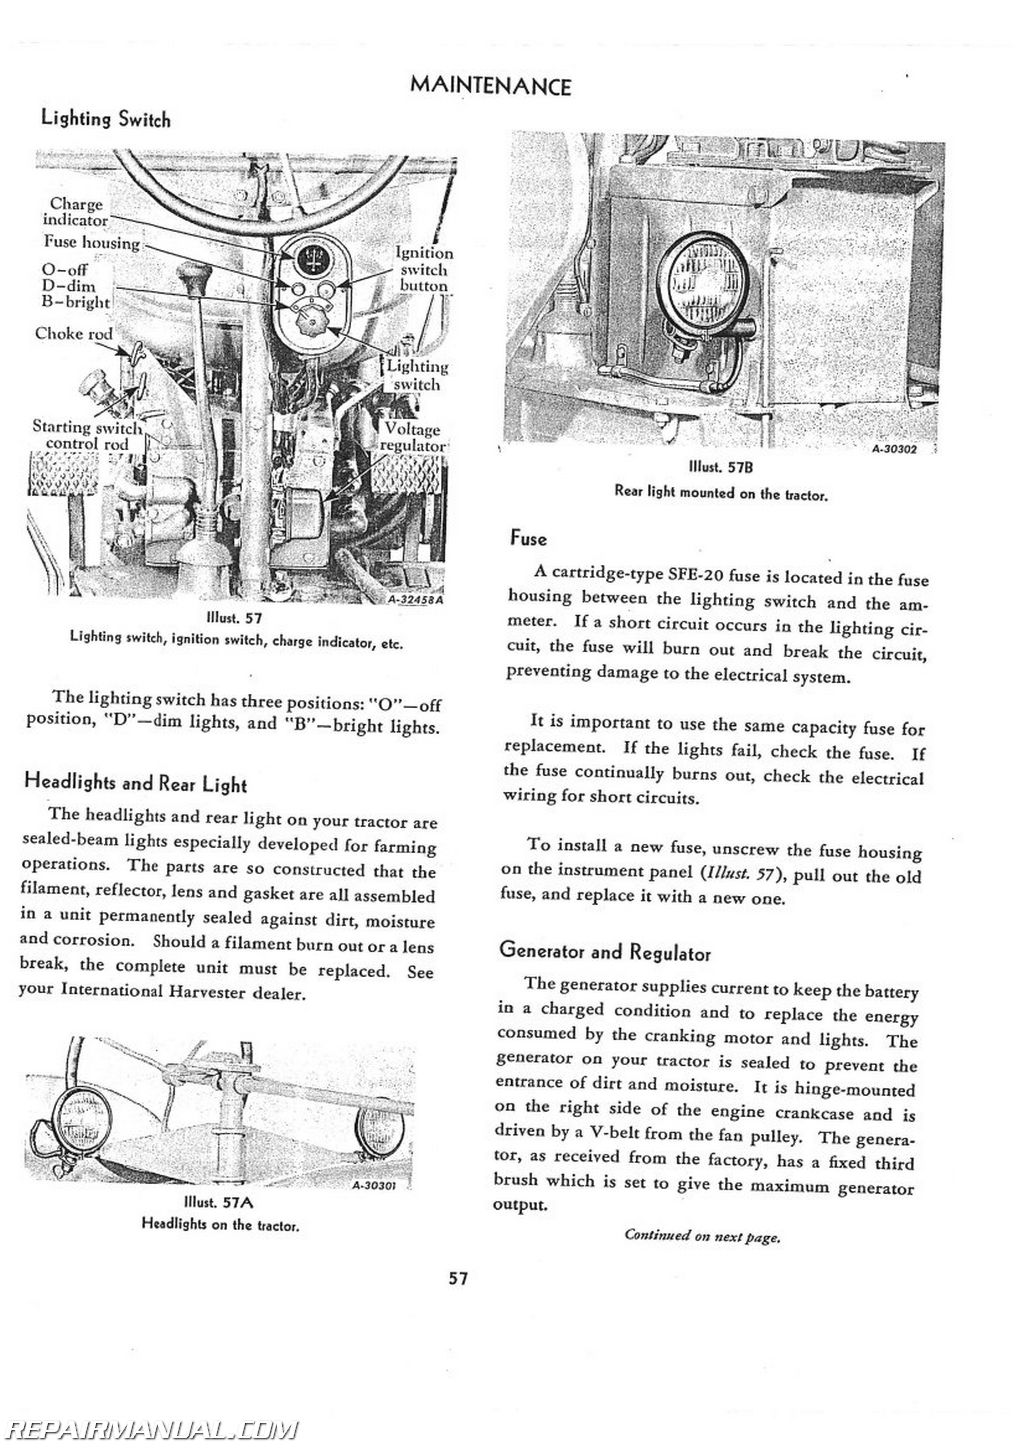 hight resolution of magnificent ih farmall super a wiring diagram elaboration source farmall super mta wiring diagram diagrams international harvester